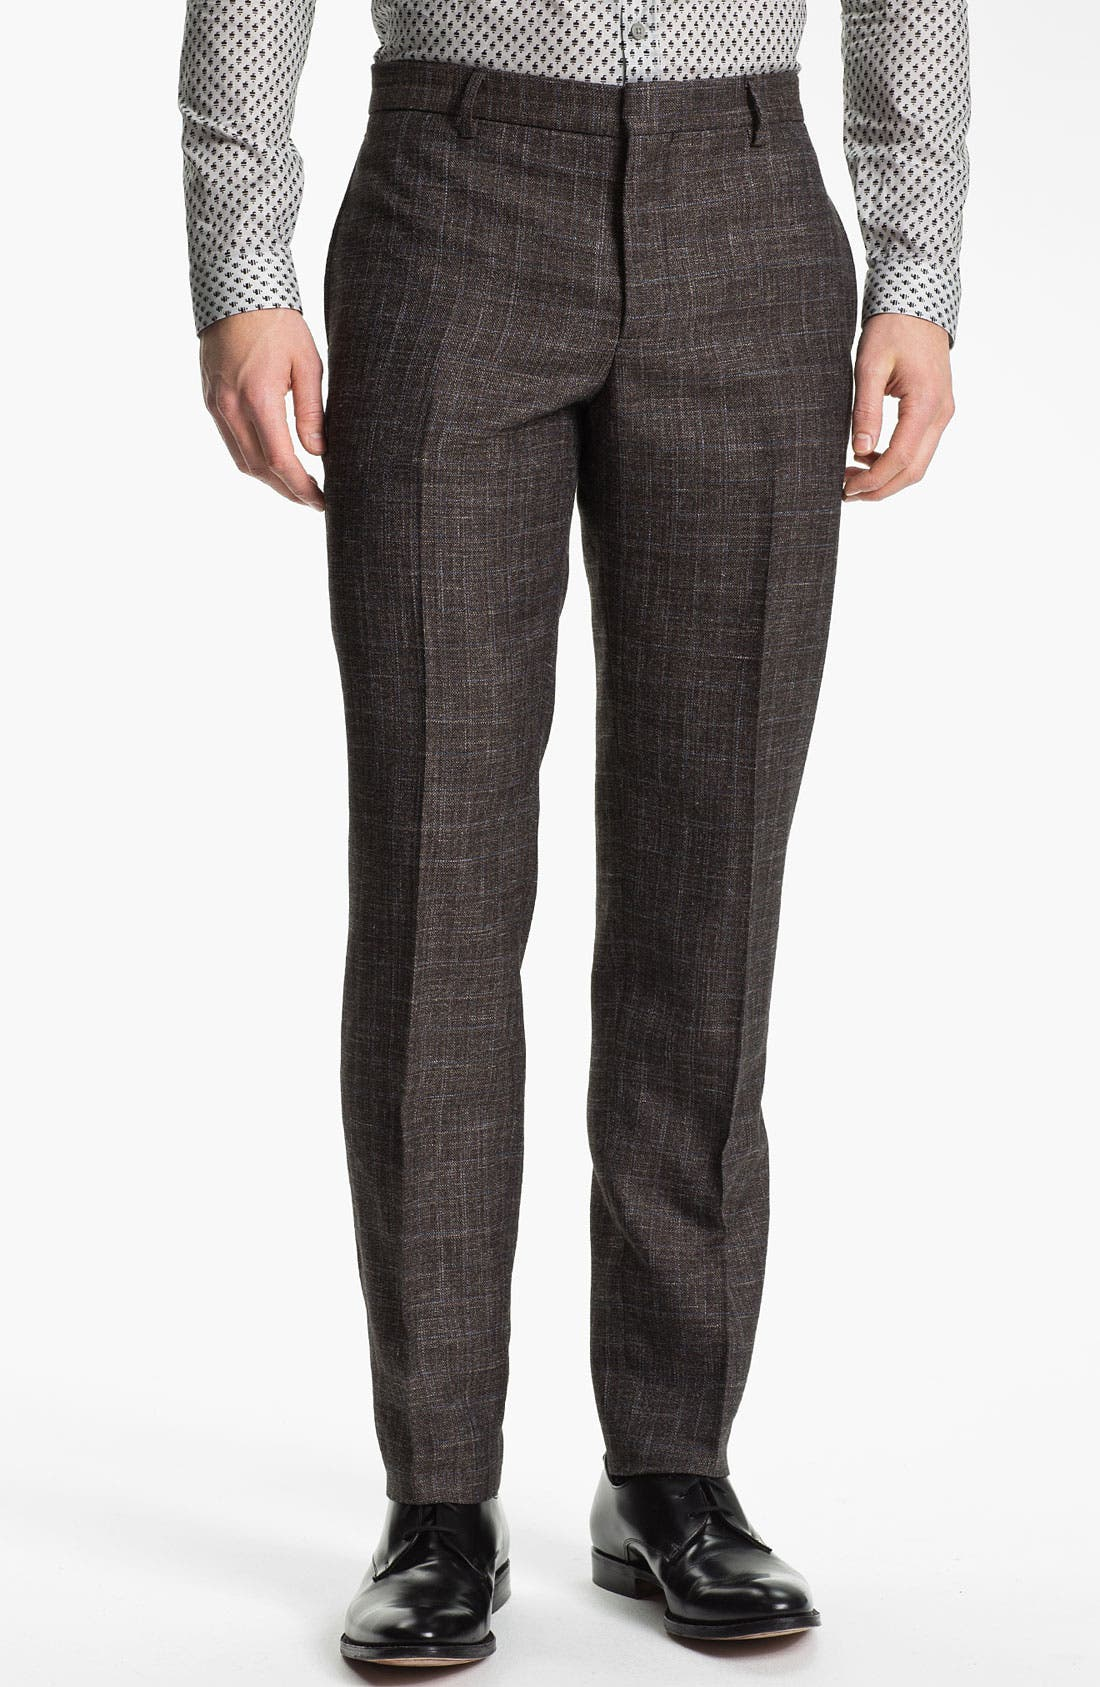 Alternate Image 1 Selected - Burberry Prorsum Slim Fit Plaid Twill Trousers